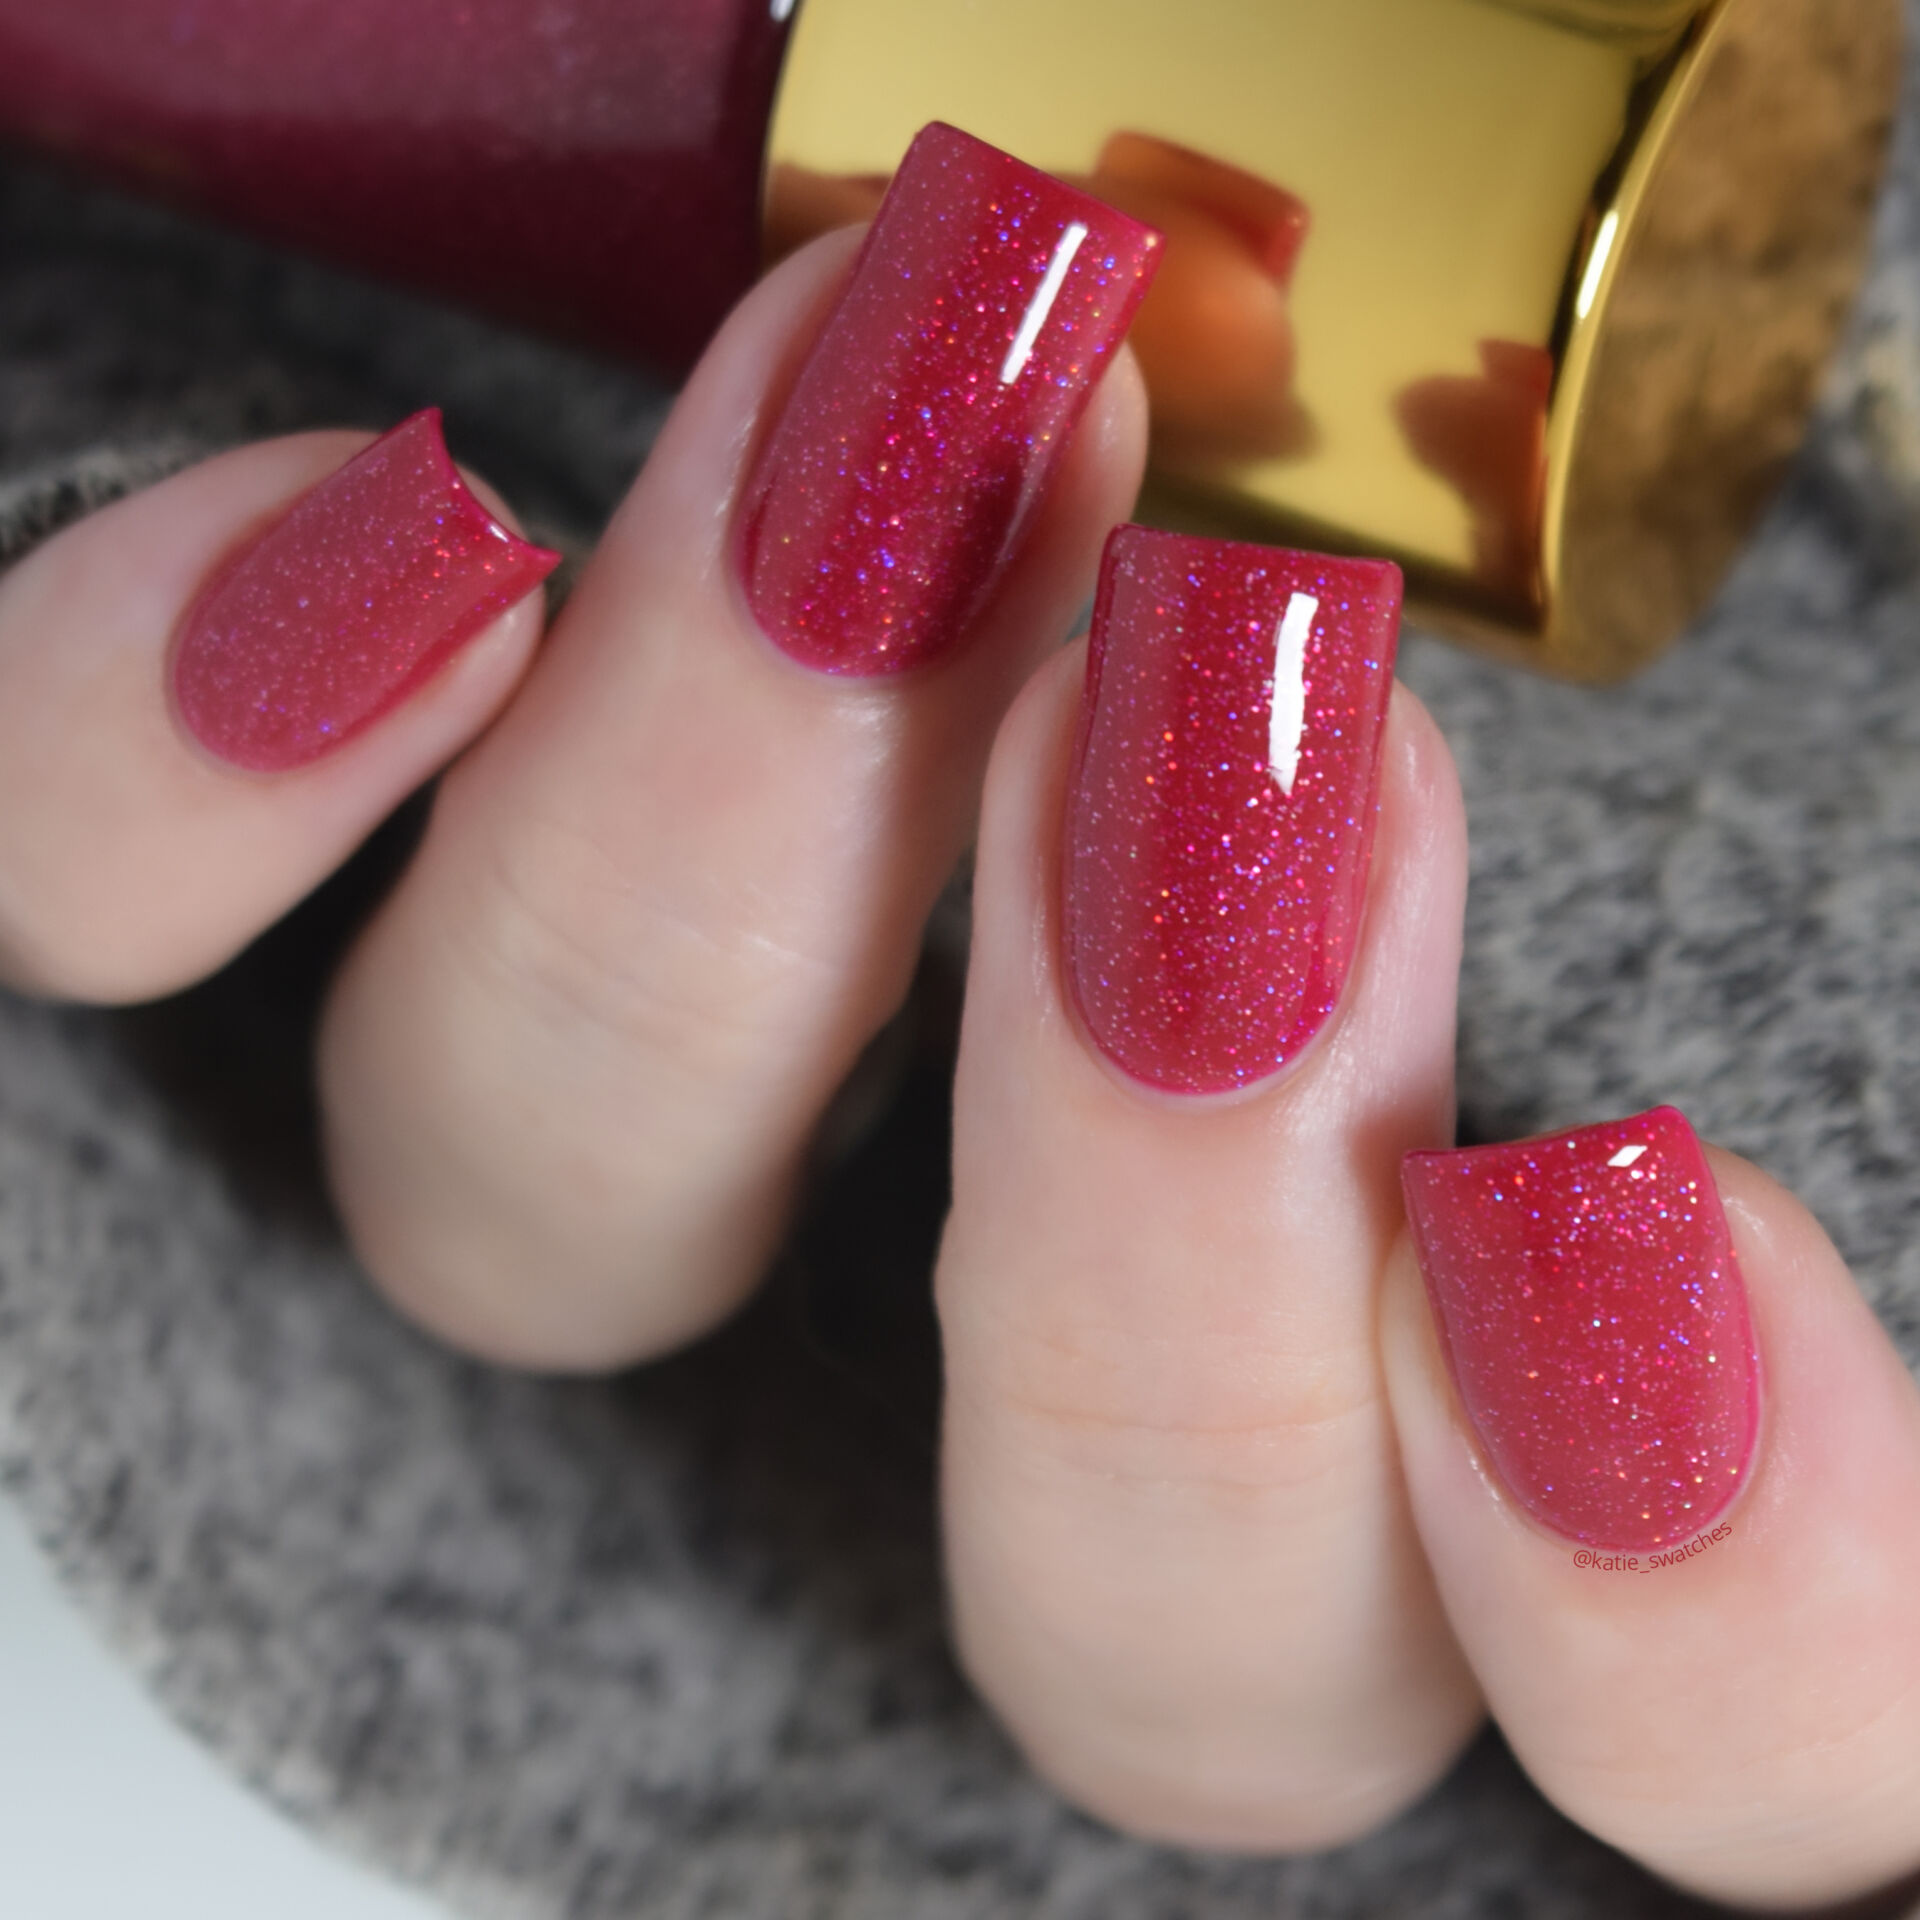 Tripe O Polish - Ooni raspberry jelly nail polish with holographic glitter swatch